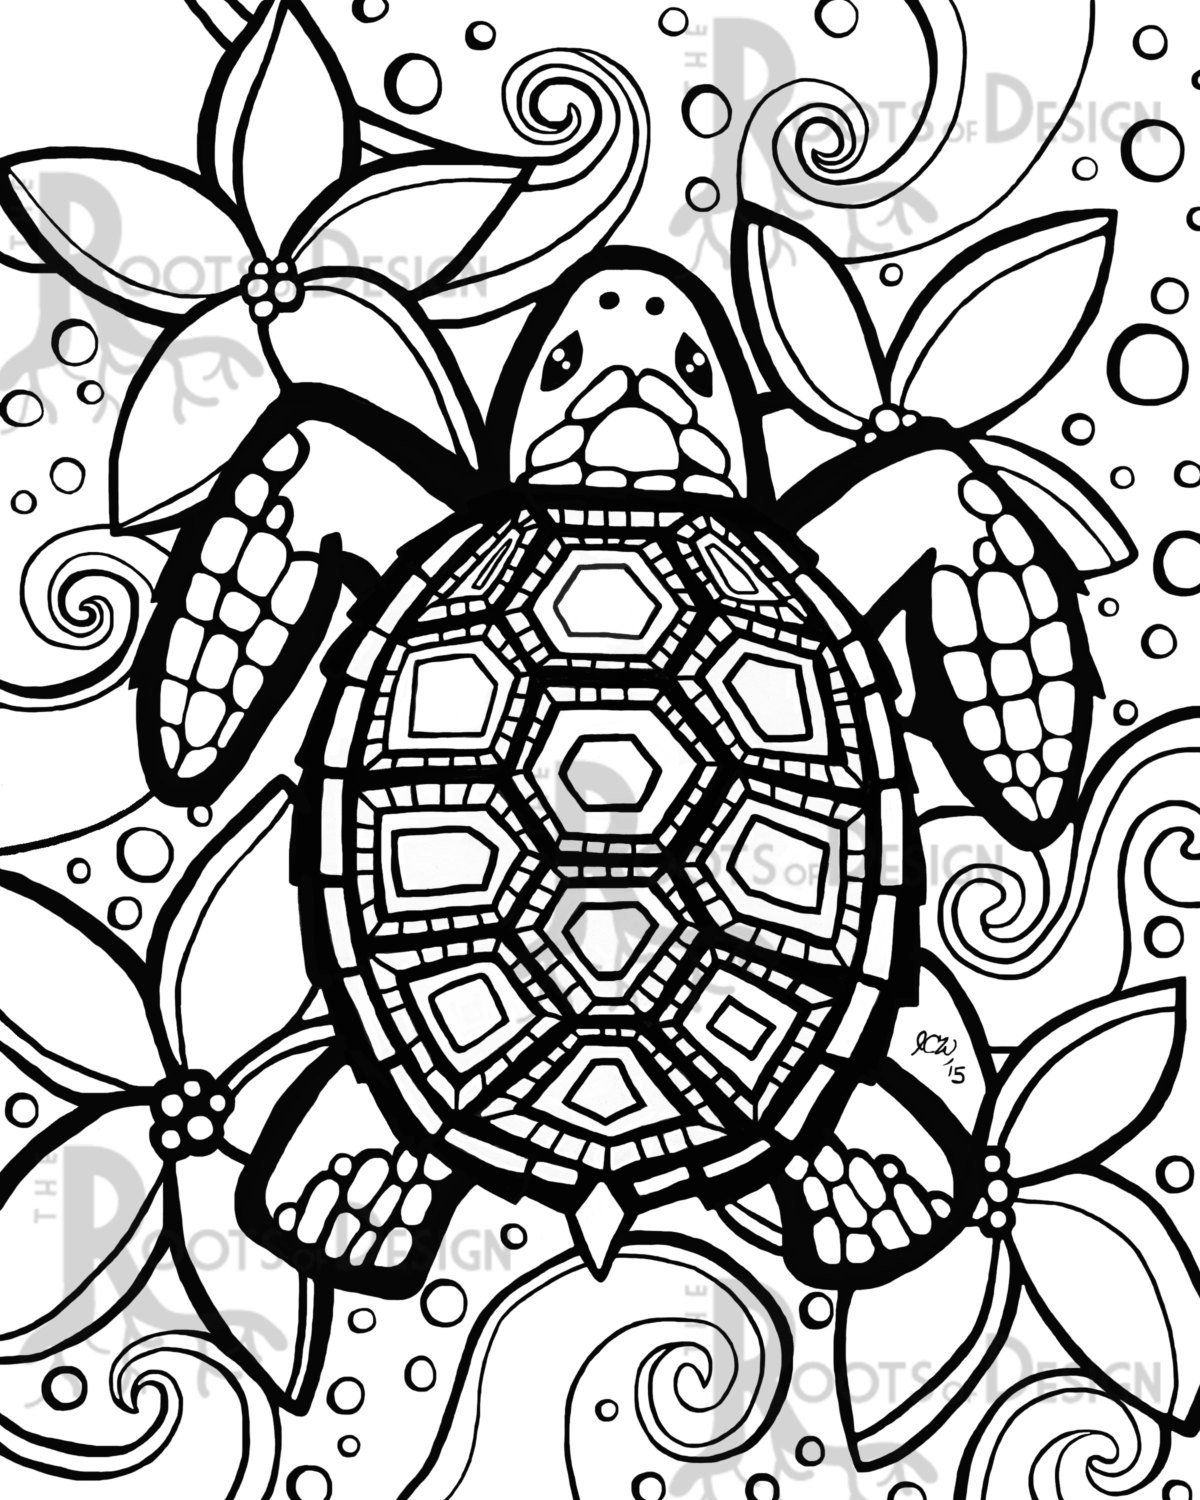 Sea Turtle Coloring Pages Beautiful Sea Turtle Printable Coloring Pages At Getcolorings Turtle Coloring Pages Animal Coloring Pages Coloring Pages For Kids